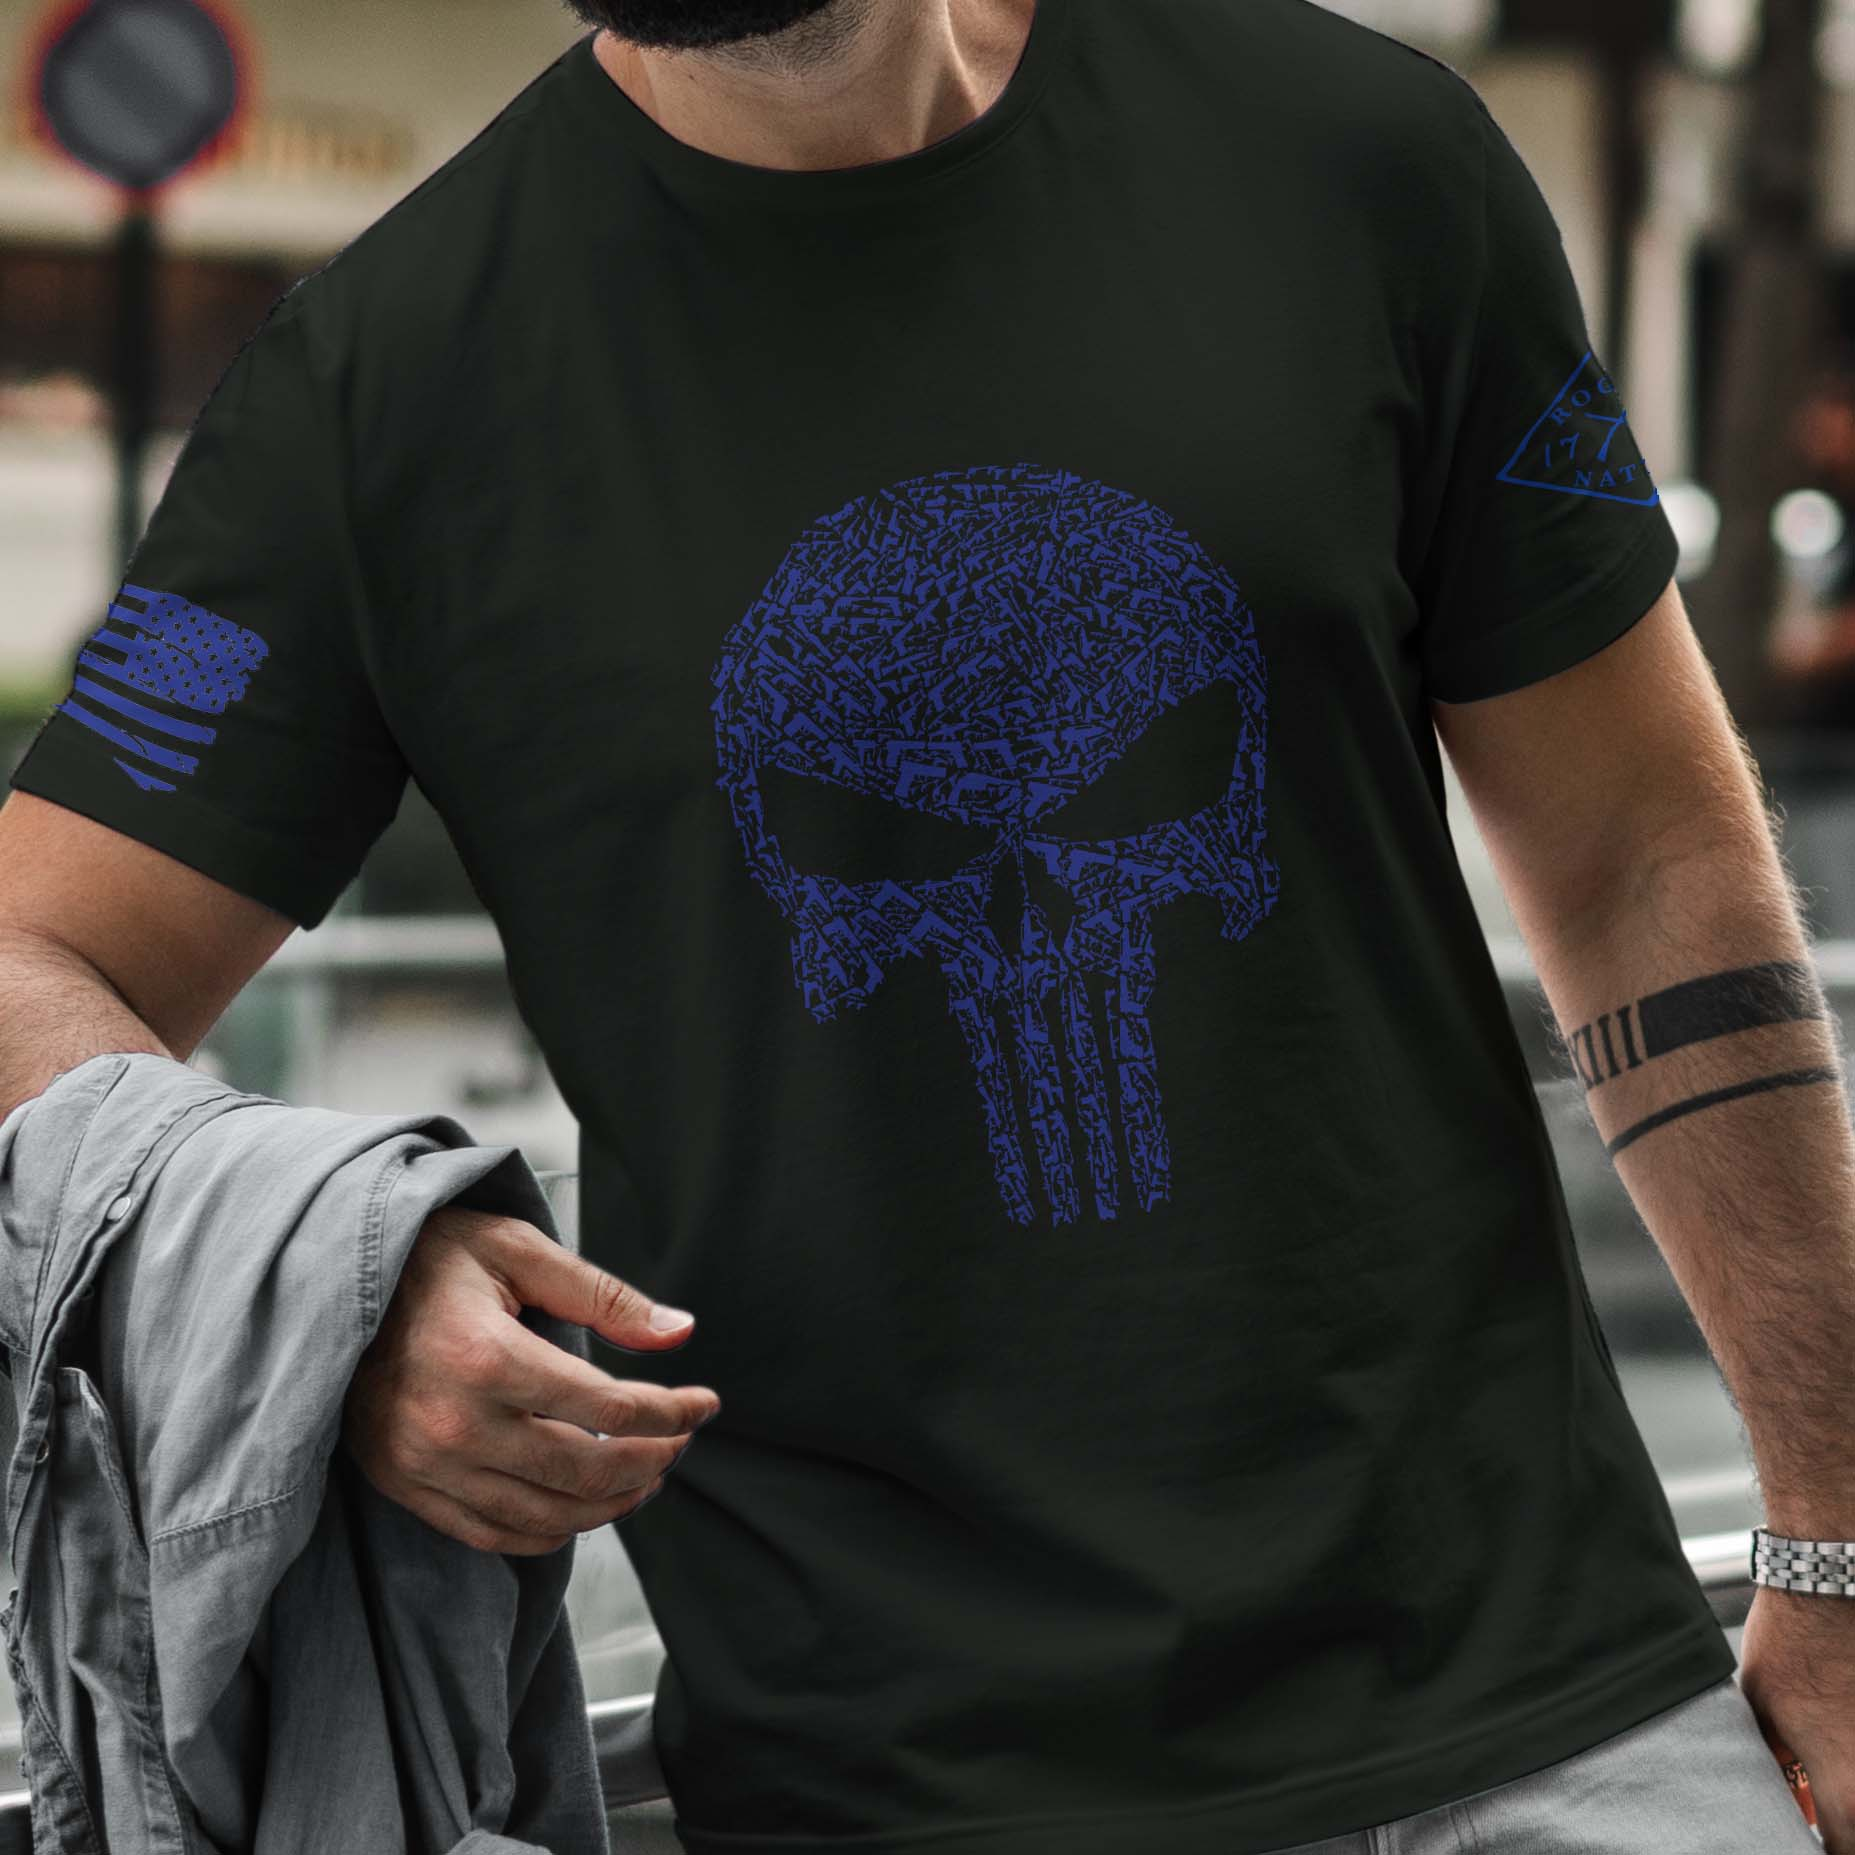 t-shirt with punisher guns on black mens